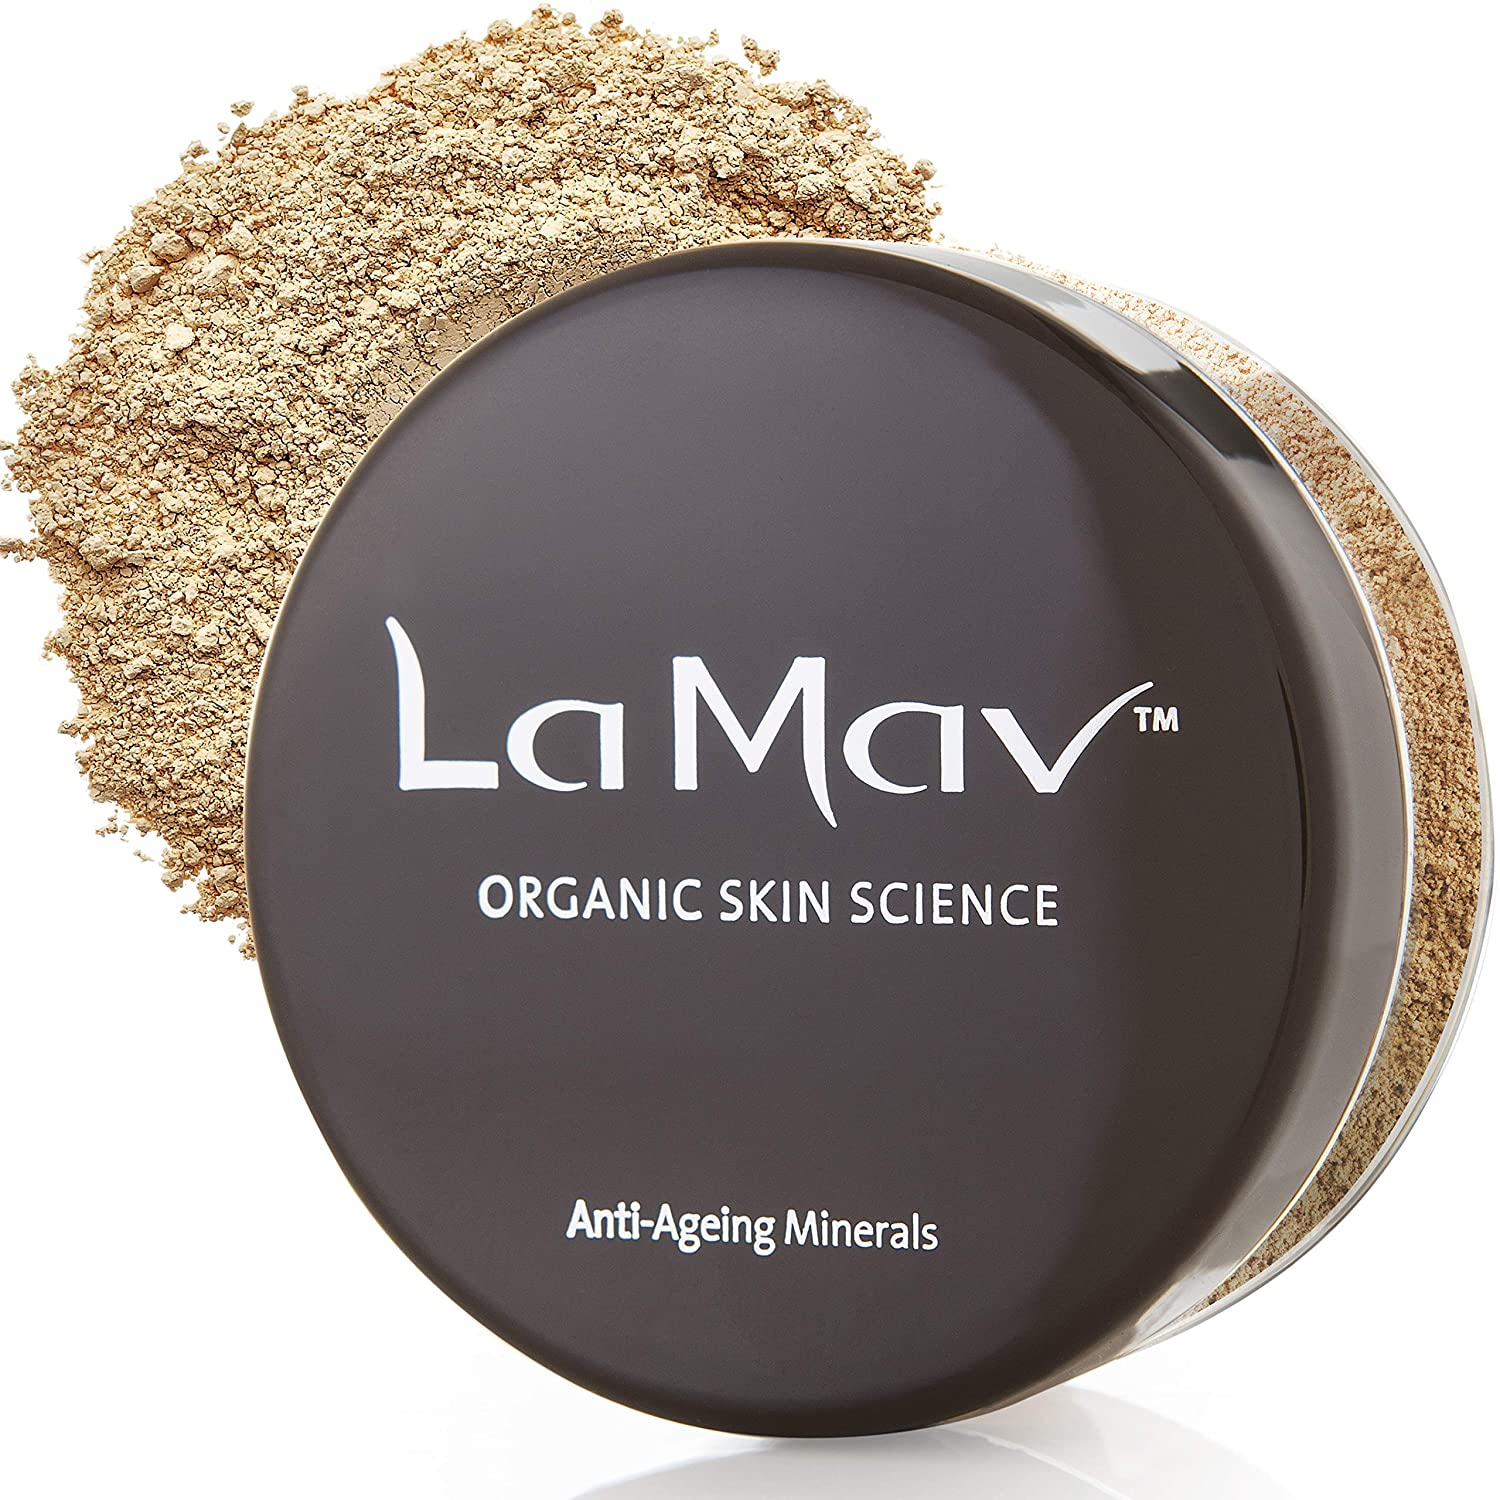 La Mav Foundation Powder Makeup DARK - Chemical-free, Anti-Aging Mineral Foundation, Concealer, SPF 15 and Powder All-in-one - Light or Buildable Coverage - Long Lasting, Water Resistant Formula